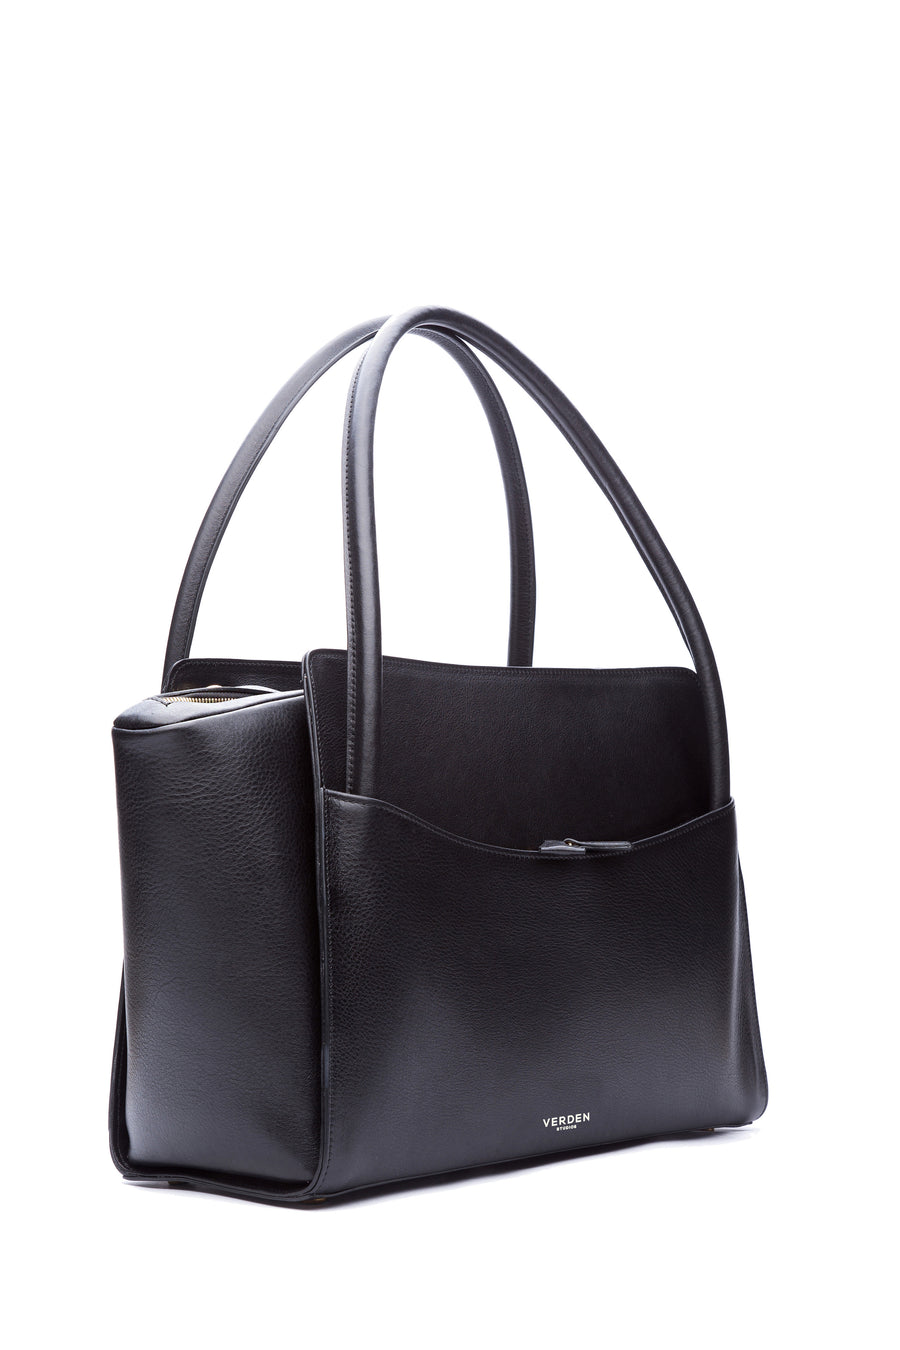 Sleek and functional workbag / business bag - VERDEN STUDIOS - The Moskenes in volcano black